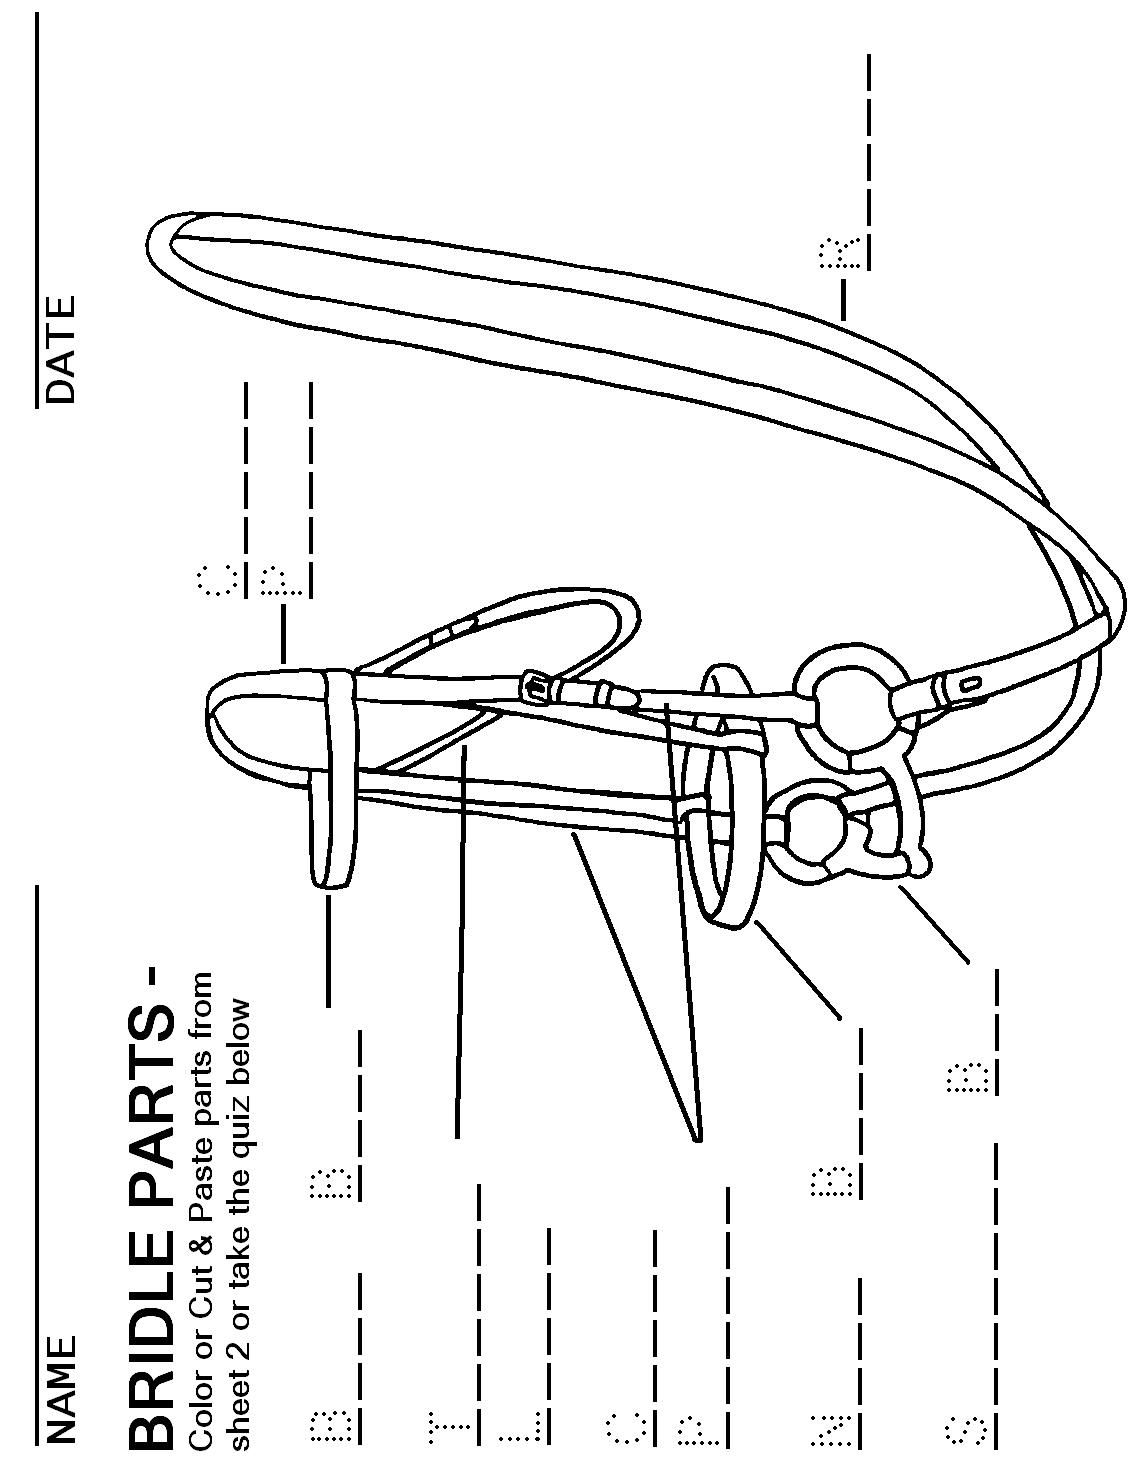 booklet pg 18 bridle parts fill the blanks the rest of this workbook [ 1137 x 1463 Pixel ]